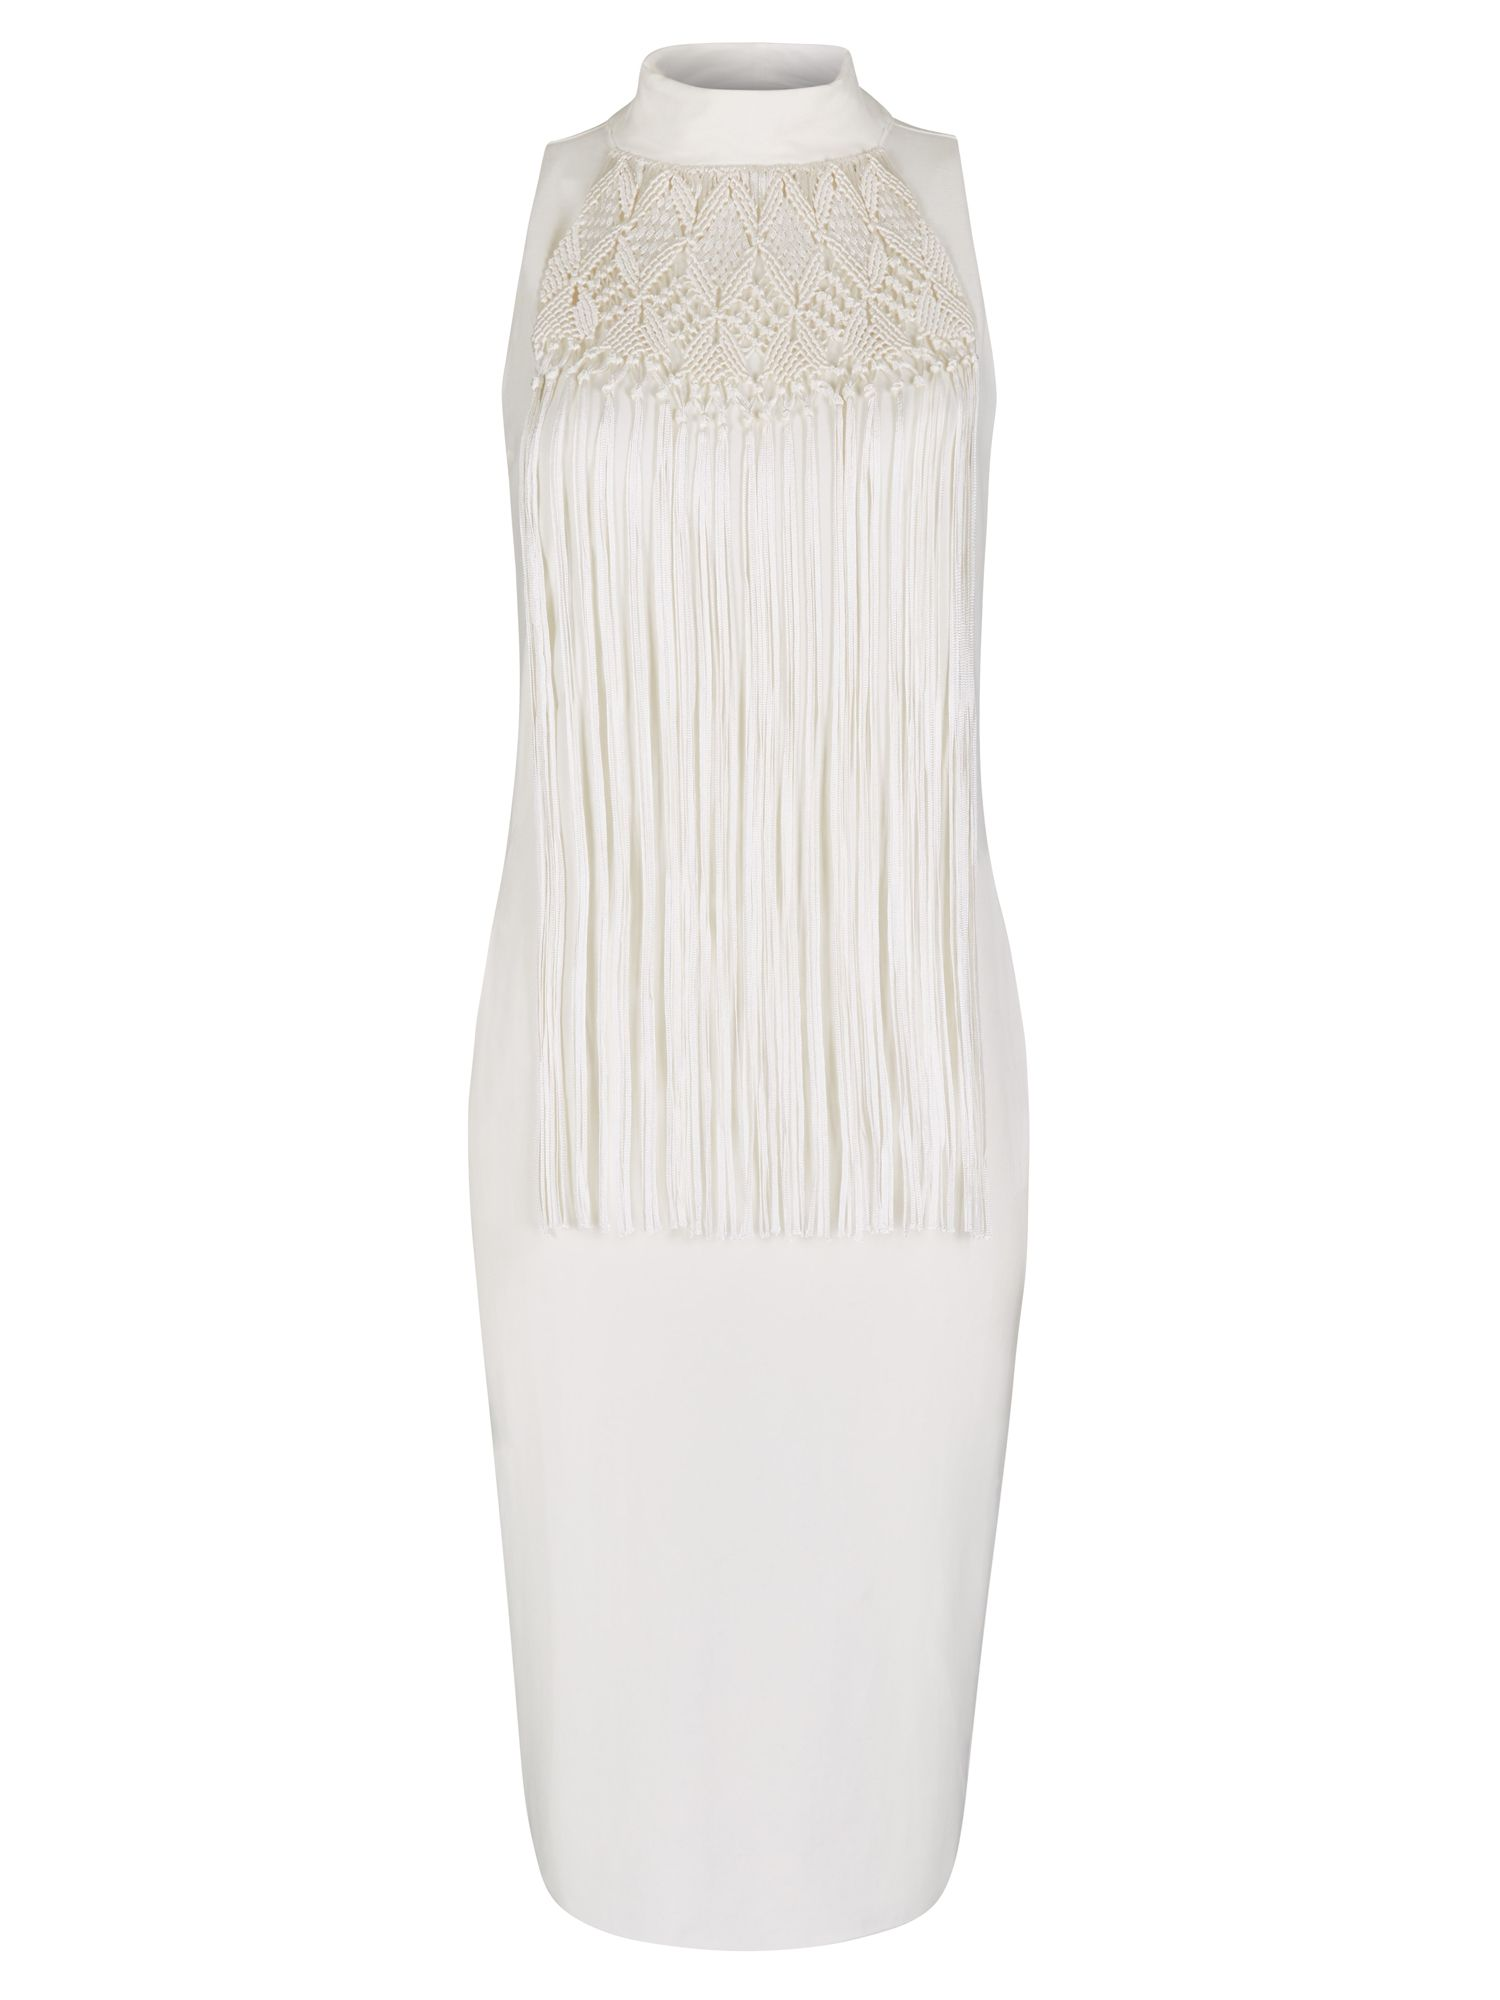 Winser London Macrame Dress, White